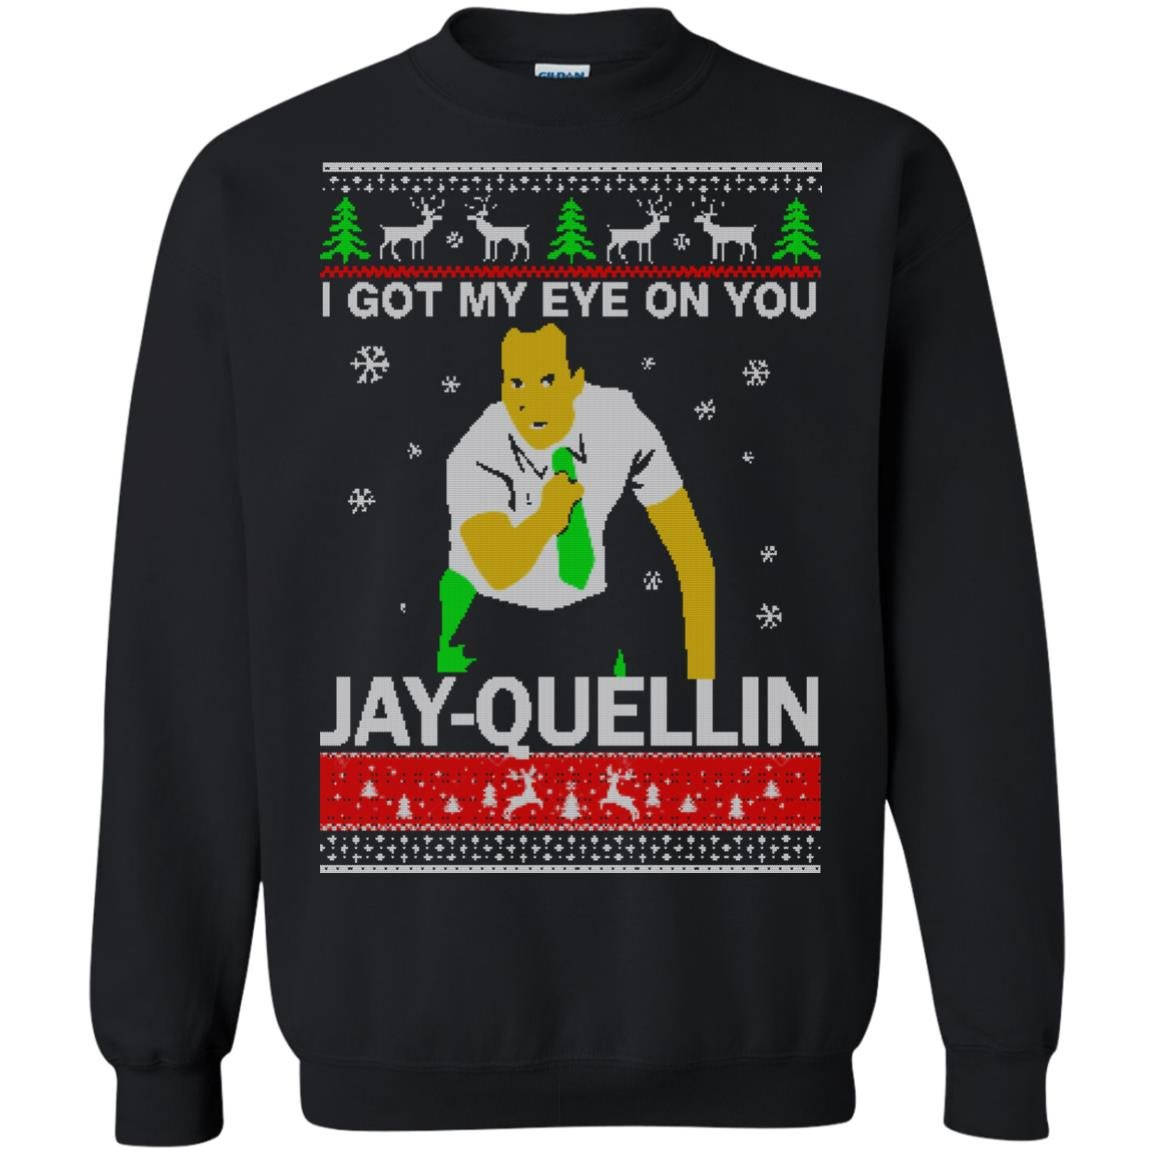 image 1041 - Key & Peele: I Got My Eye On You Jay-Quellin Christmas Sweater